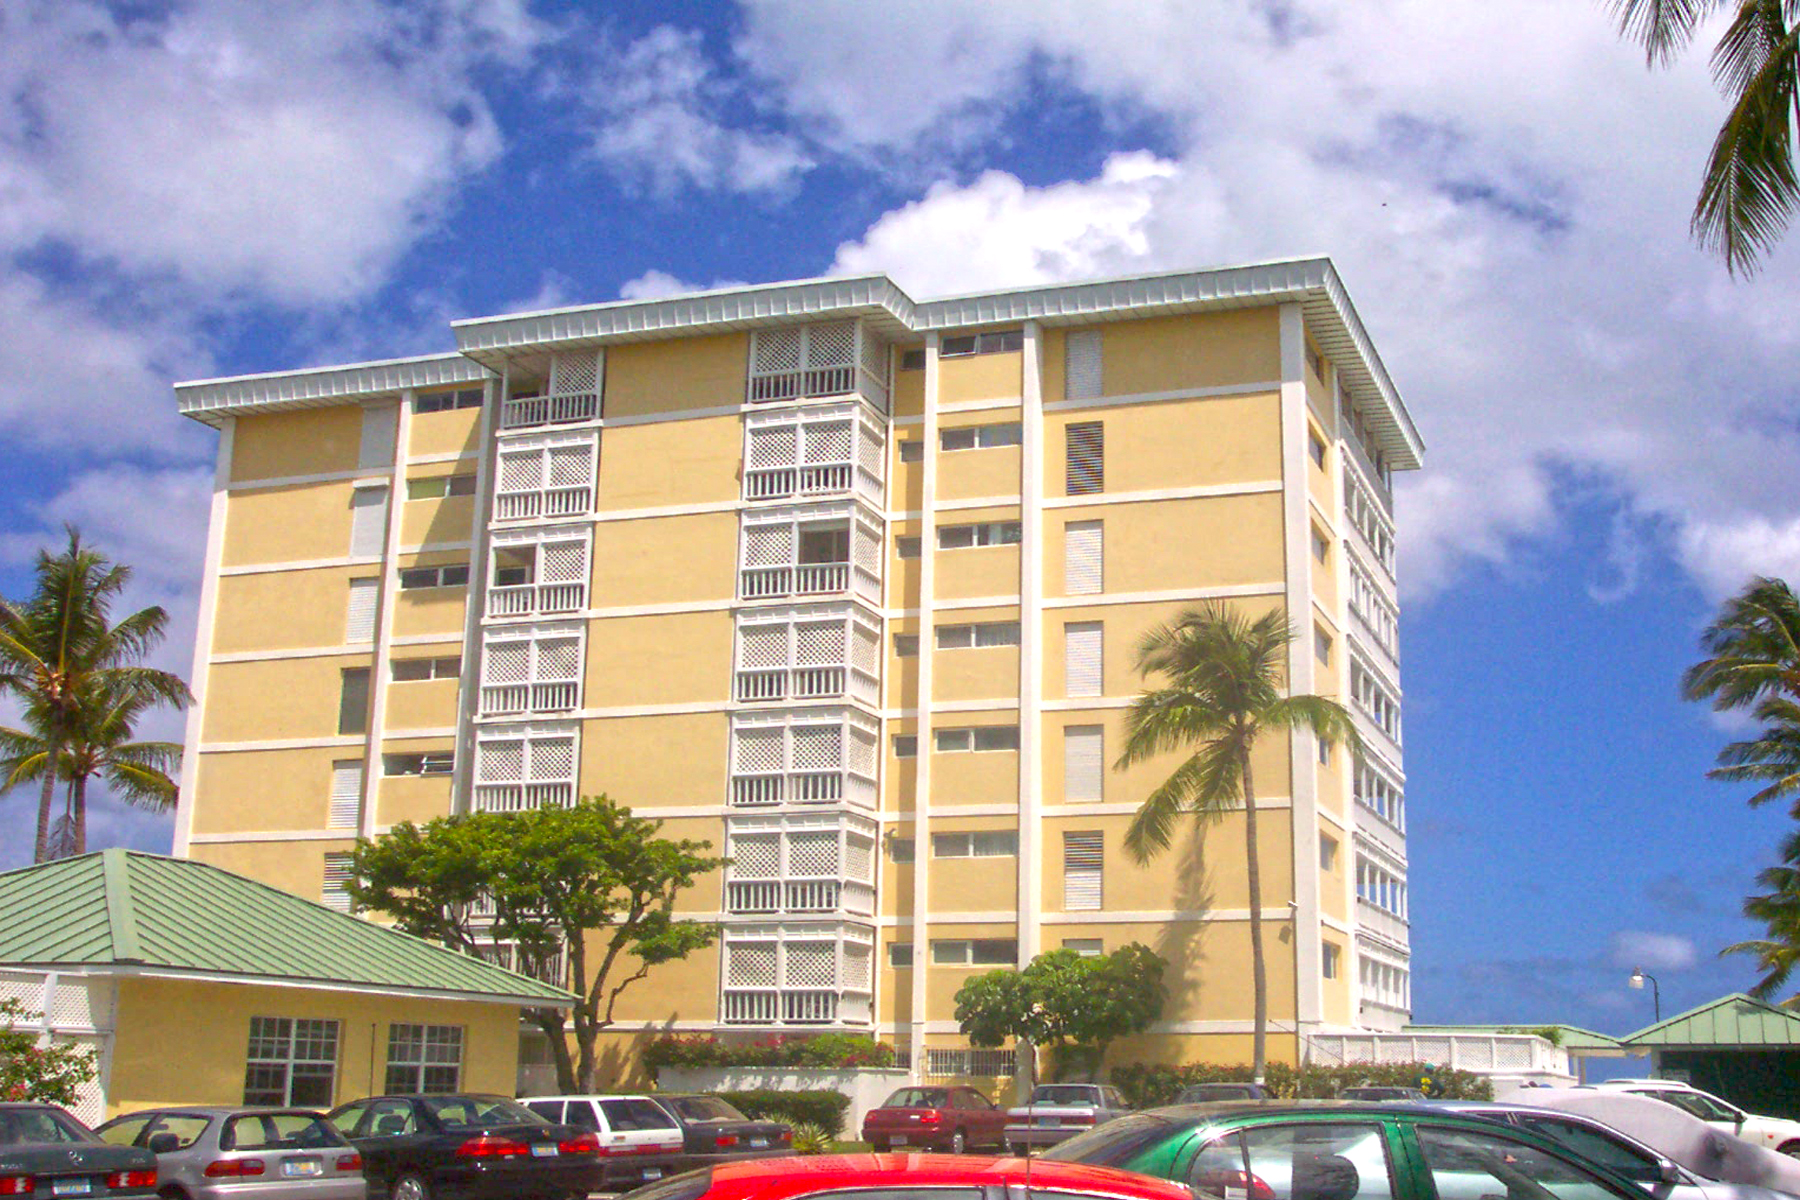 Condominium for Sale at Conchrest 6th Floor Conchrest, Cable Beach, Nassau And Paradise Island Bahamas